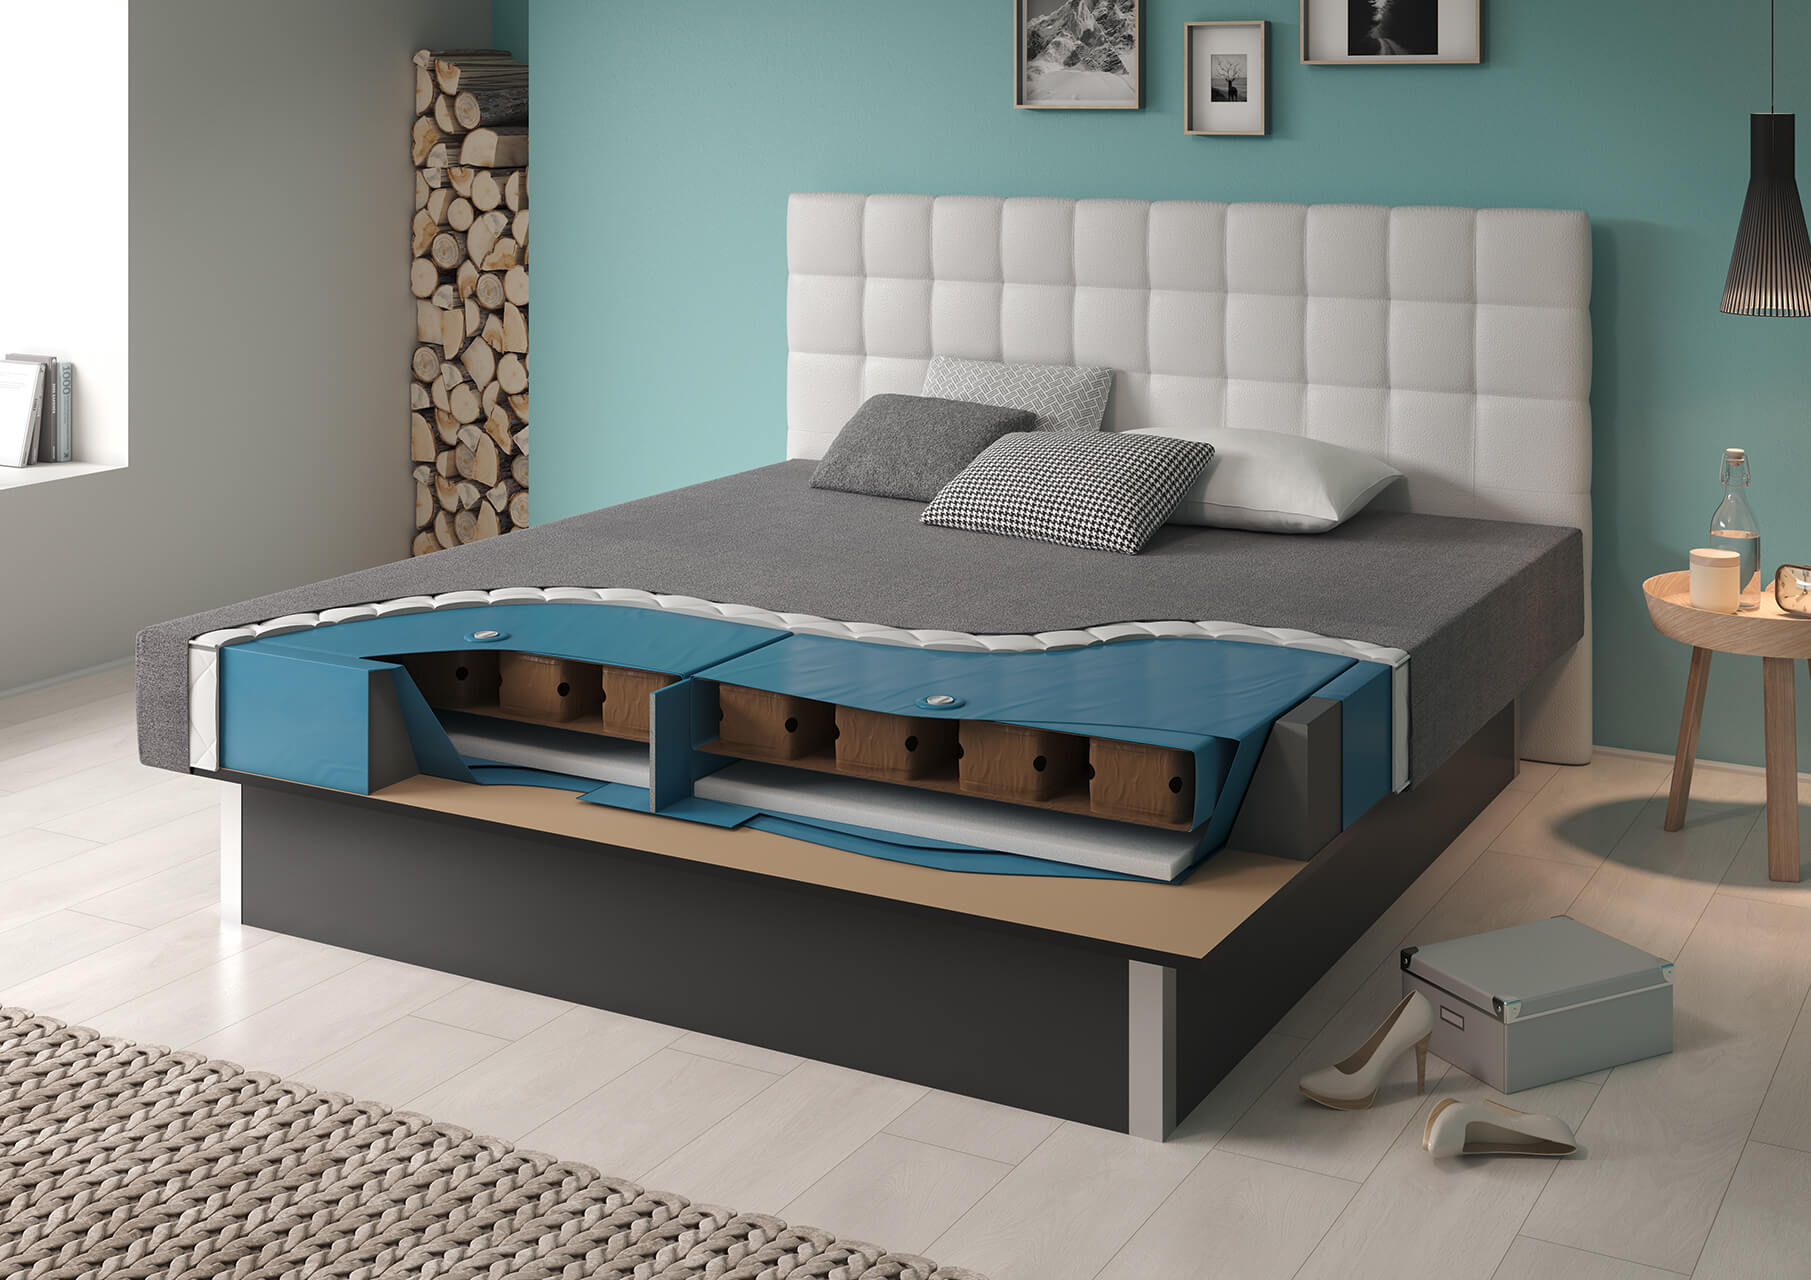 wasserbett flexx dual ein leben lang flexibel stufenlos einstellbar suma wasserbetten. Black Bedroom Furniture Sets. Home Design Ideas